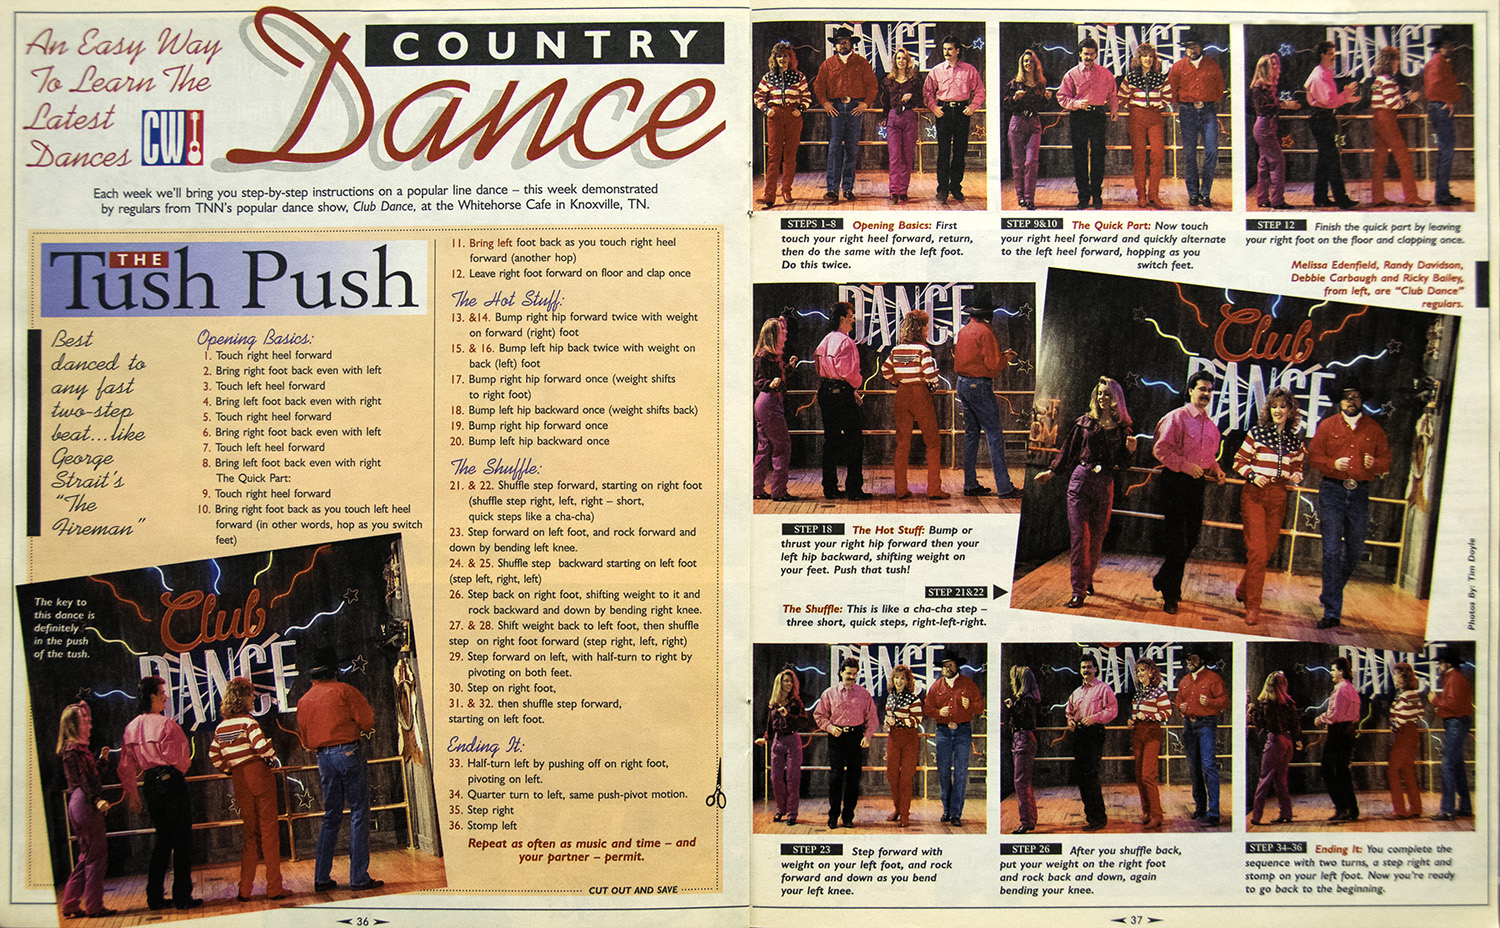 Learn to Country Dance: The Tush Push